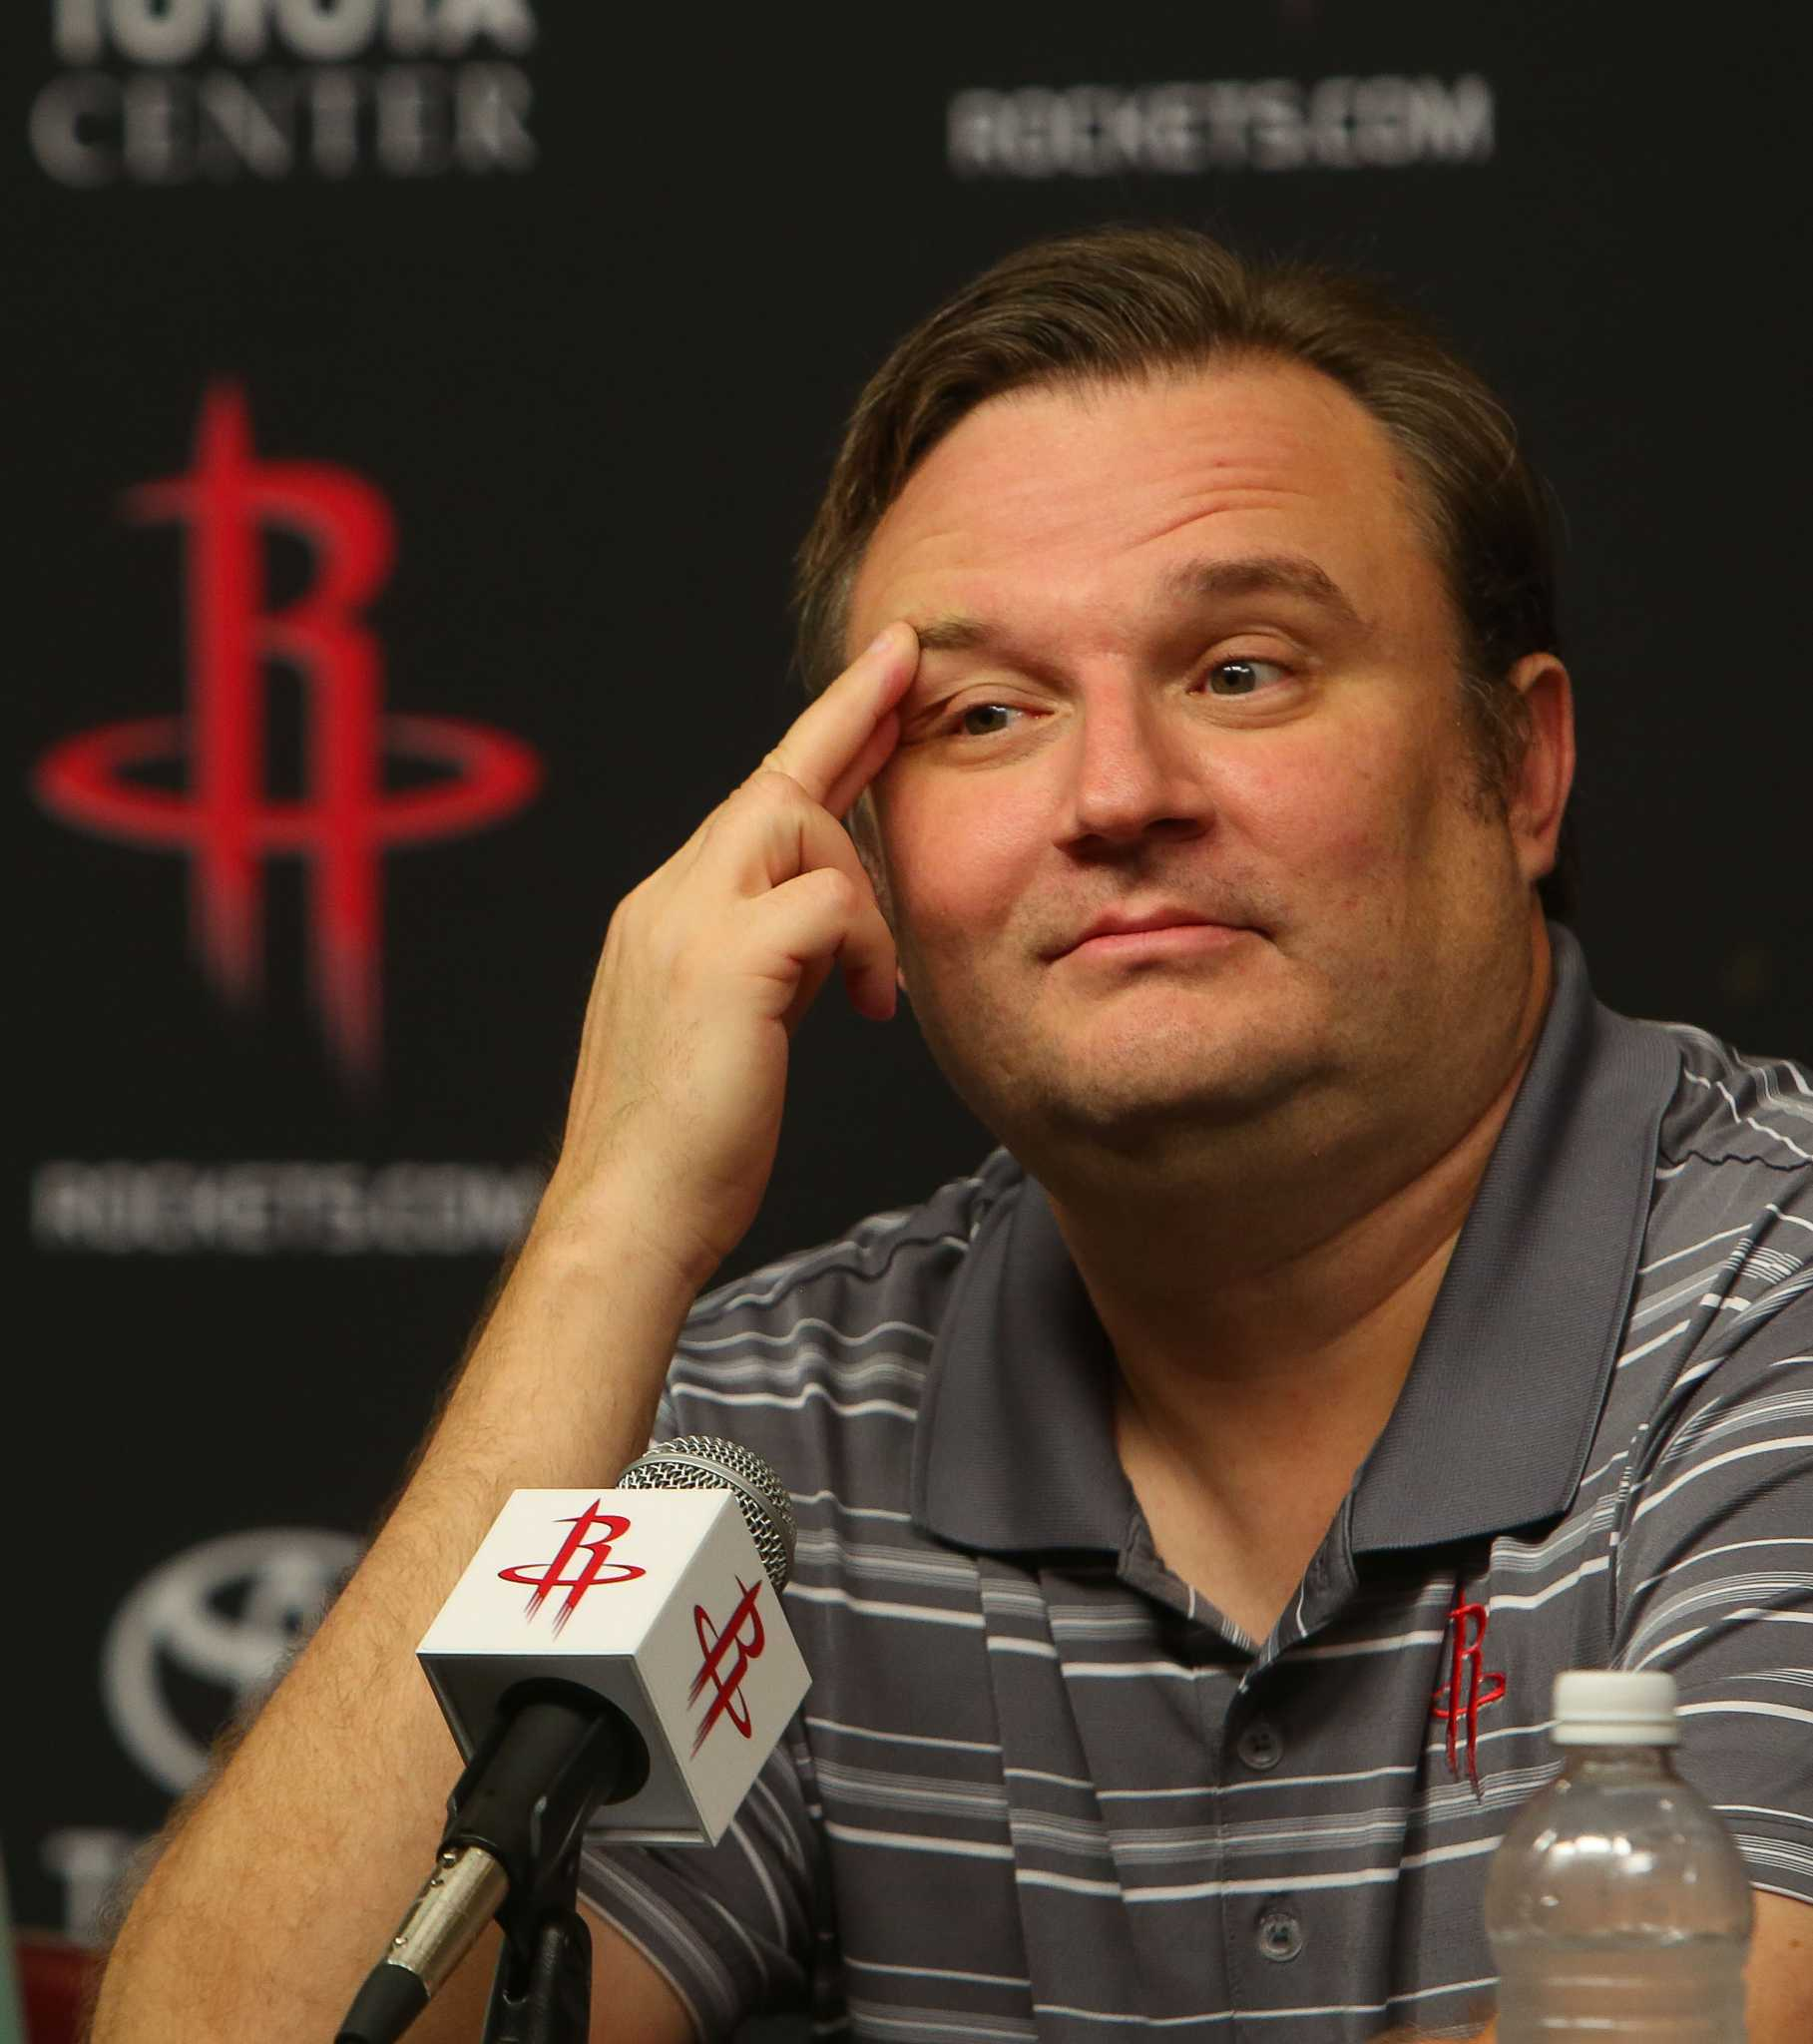 Houston Rockets Defensive Coach: Rockets GM Daryl Morey's Latest Project? A Basketball